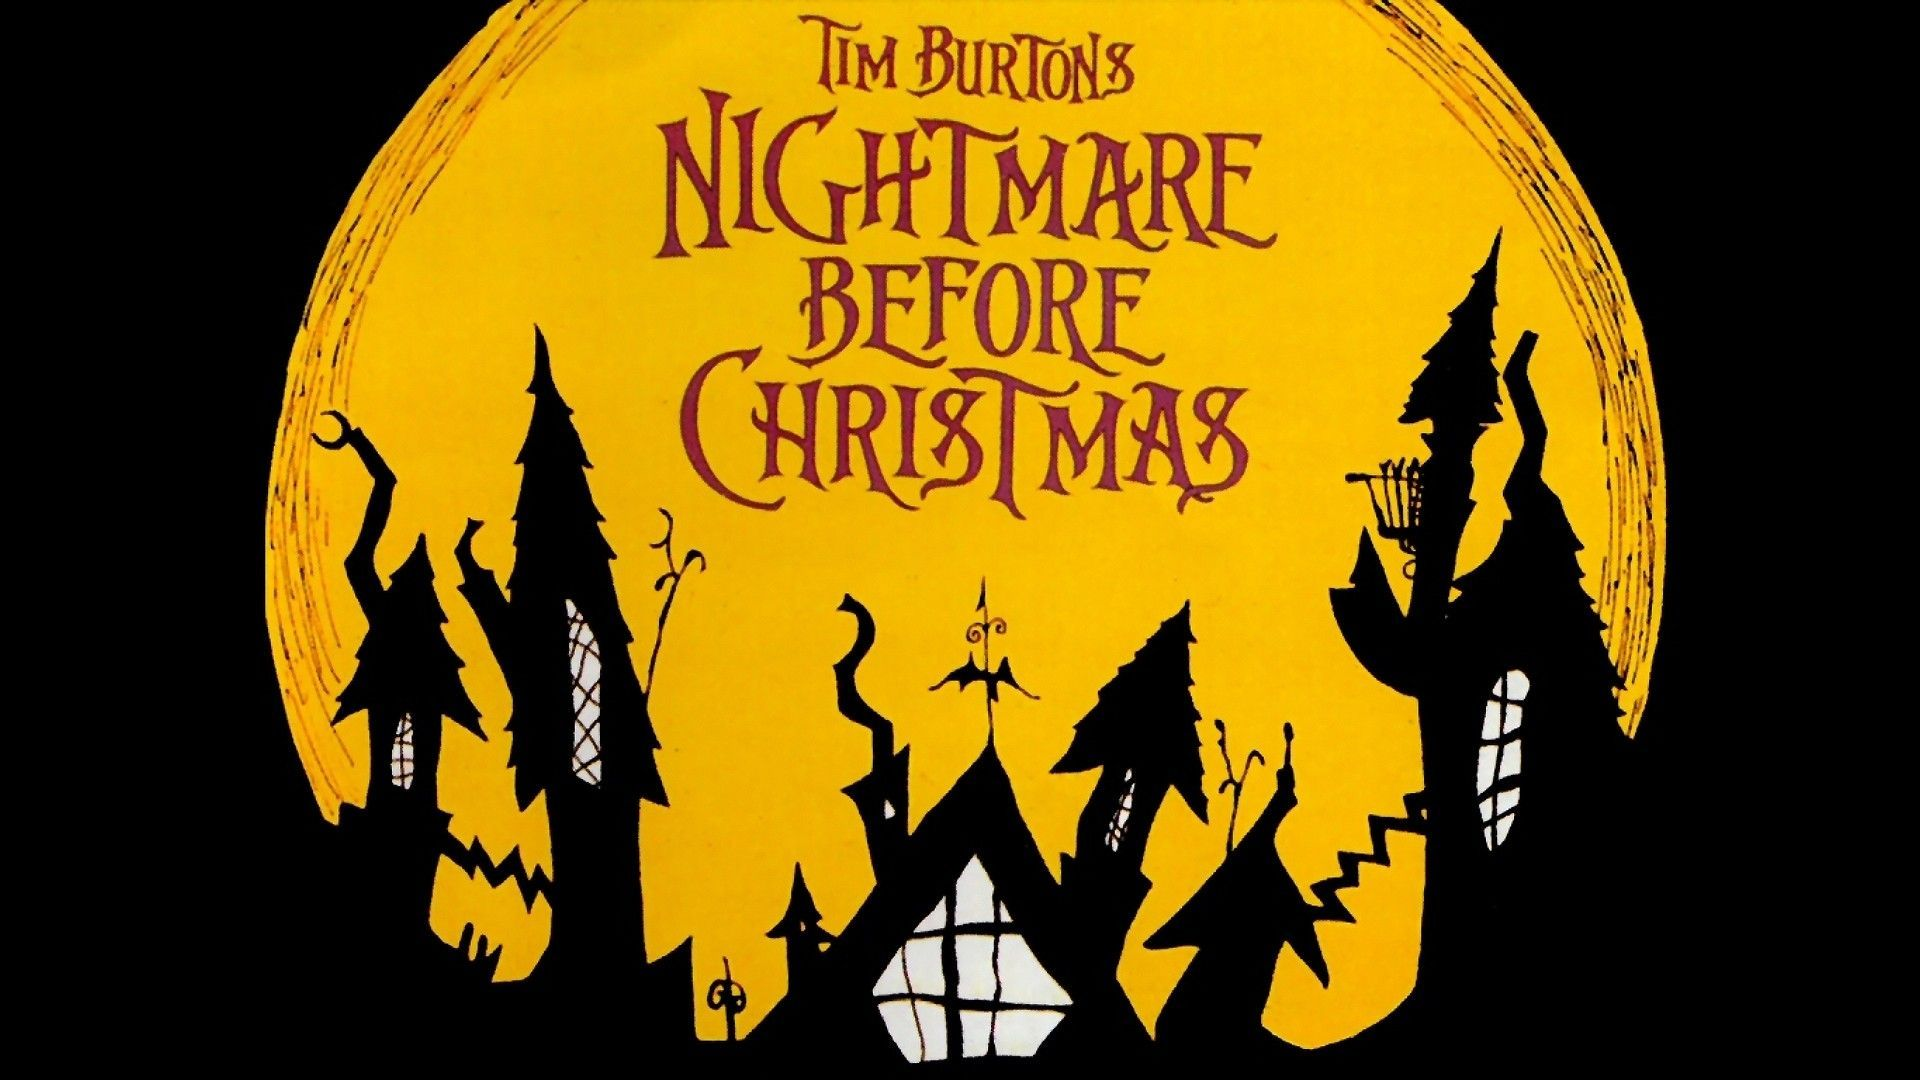 nightmare before christmas backgrounds wallpaper - Nightmare Before Christmas Backgrounds